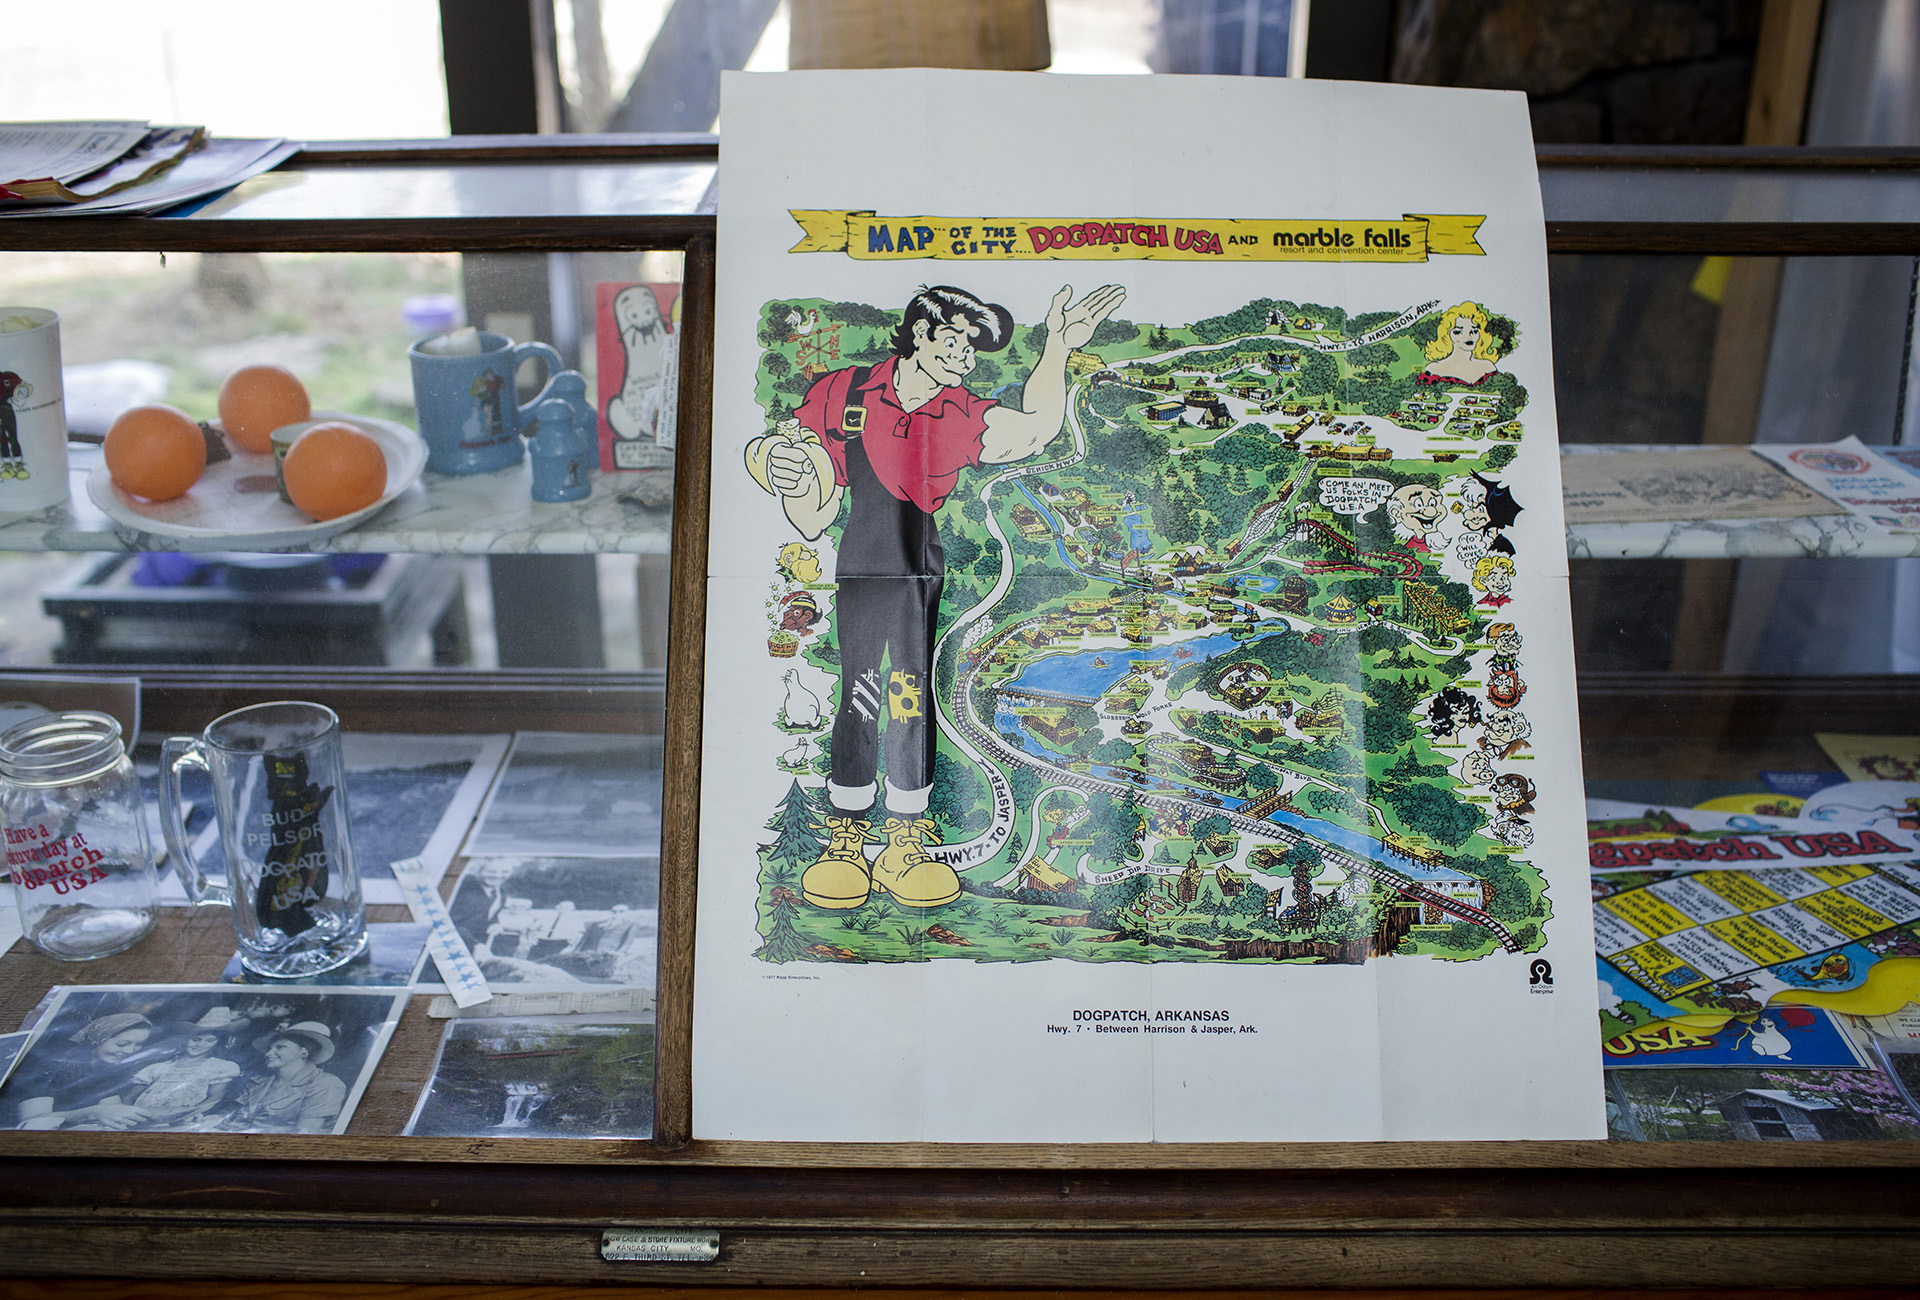 New owner Bud Pelsor has several items of park memorabilia in his home, including this comic-styled map of Dogpatch.